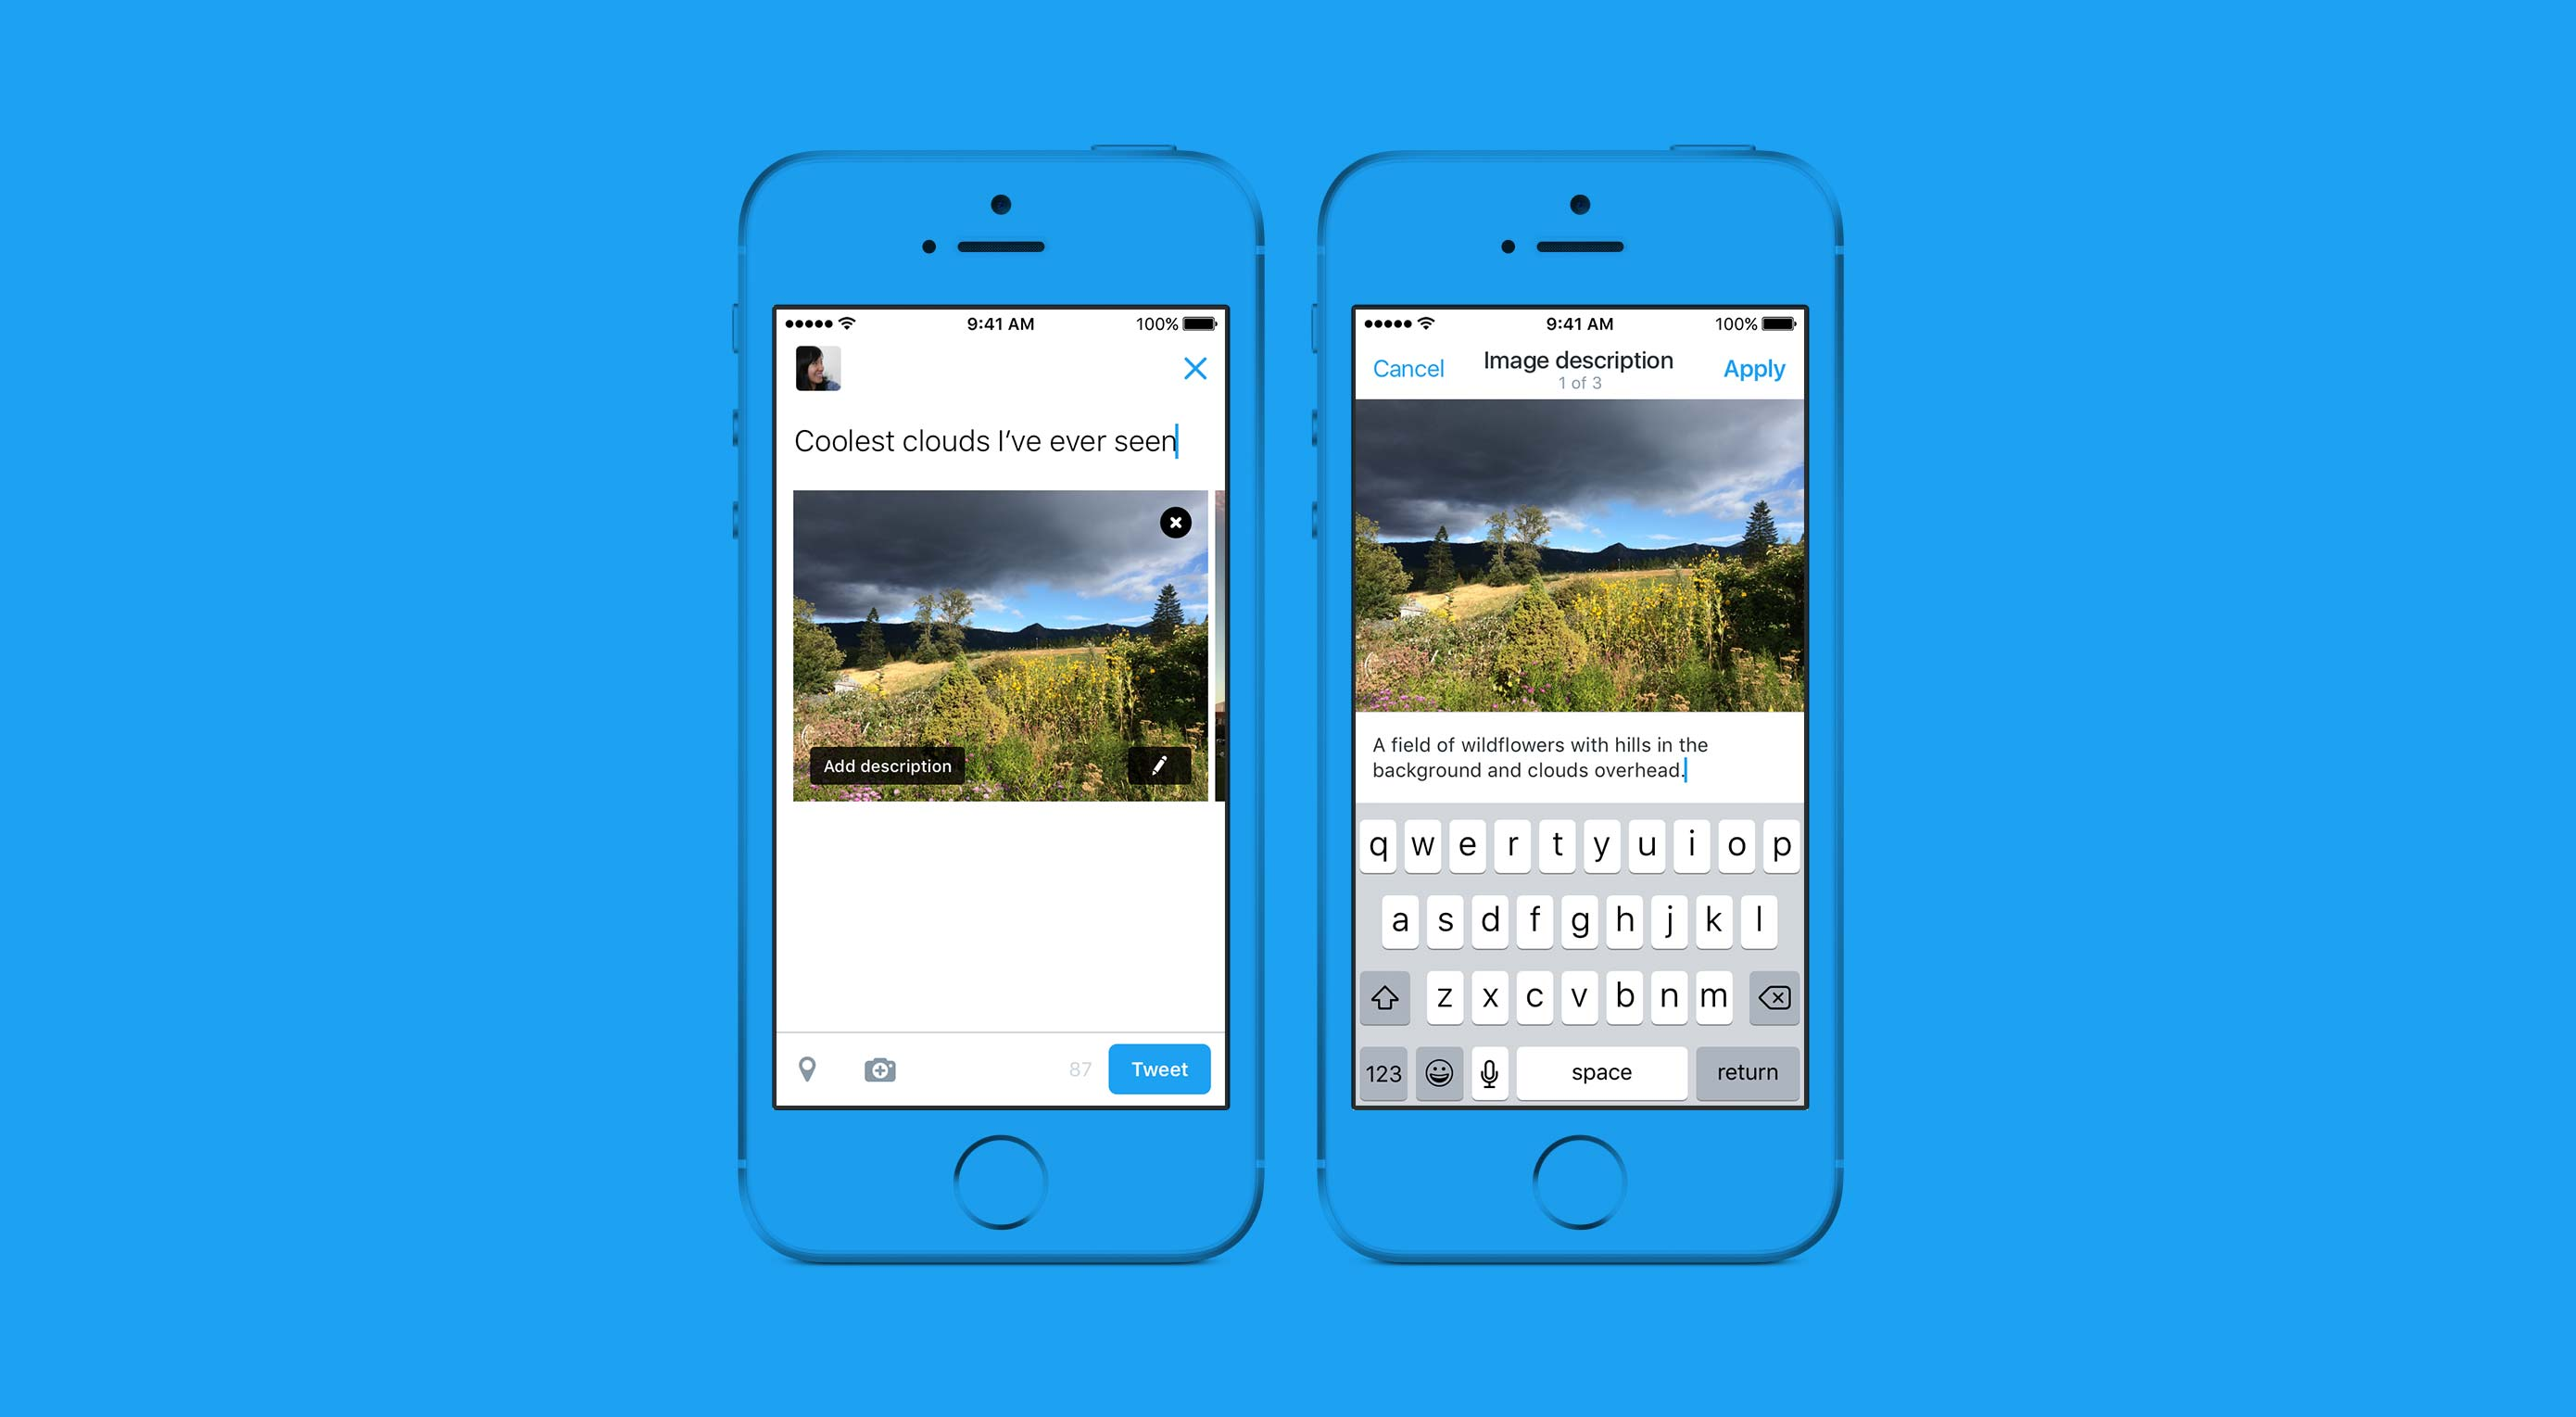 Twitter finally opens up platform to the visually impaired